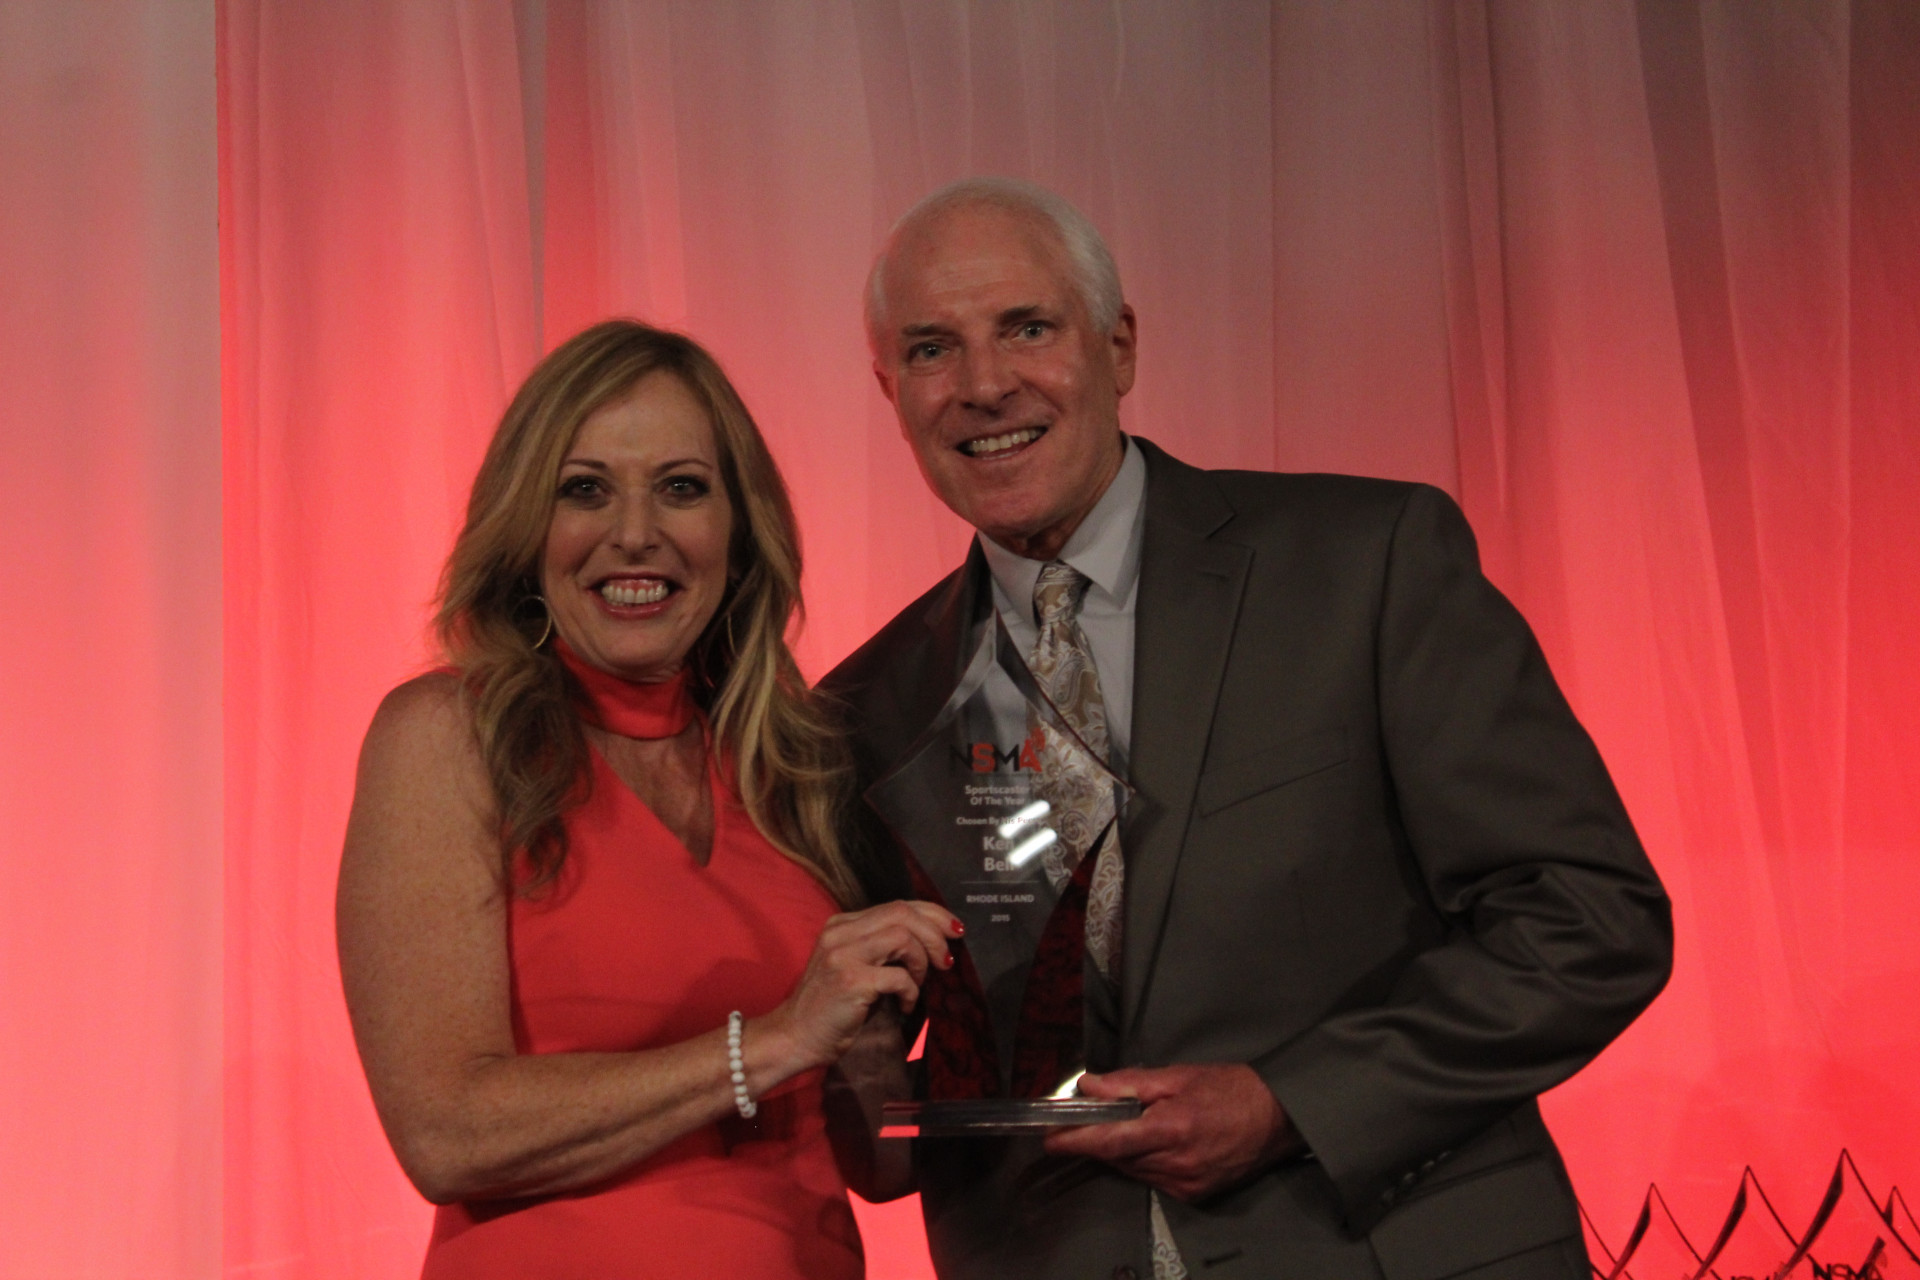 Ken Bell receives his 2016 NSMA Rhode Island Sportscaster of the Year award from ESPN's Linda Cohn, June 26, 2017 (Daniel Coston Photo - All Rights Reserved)